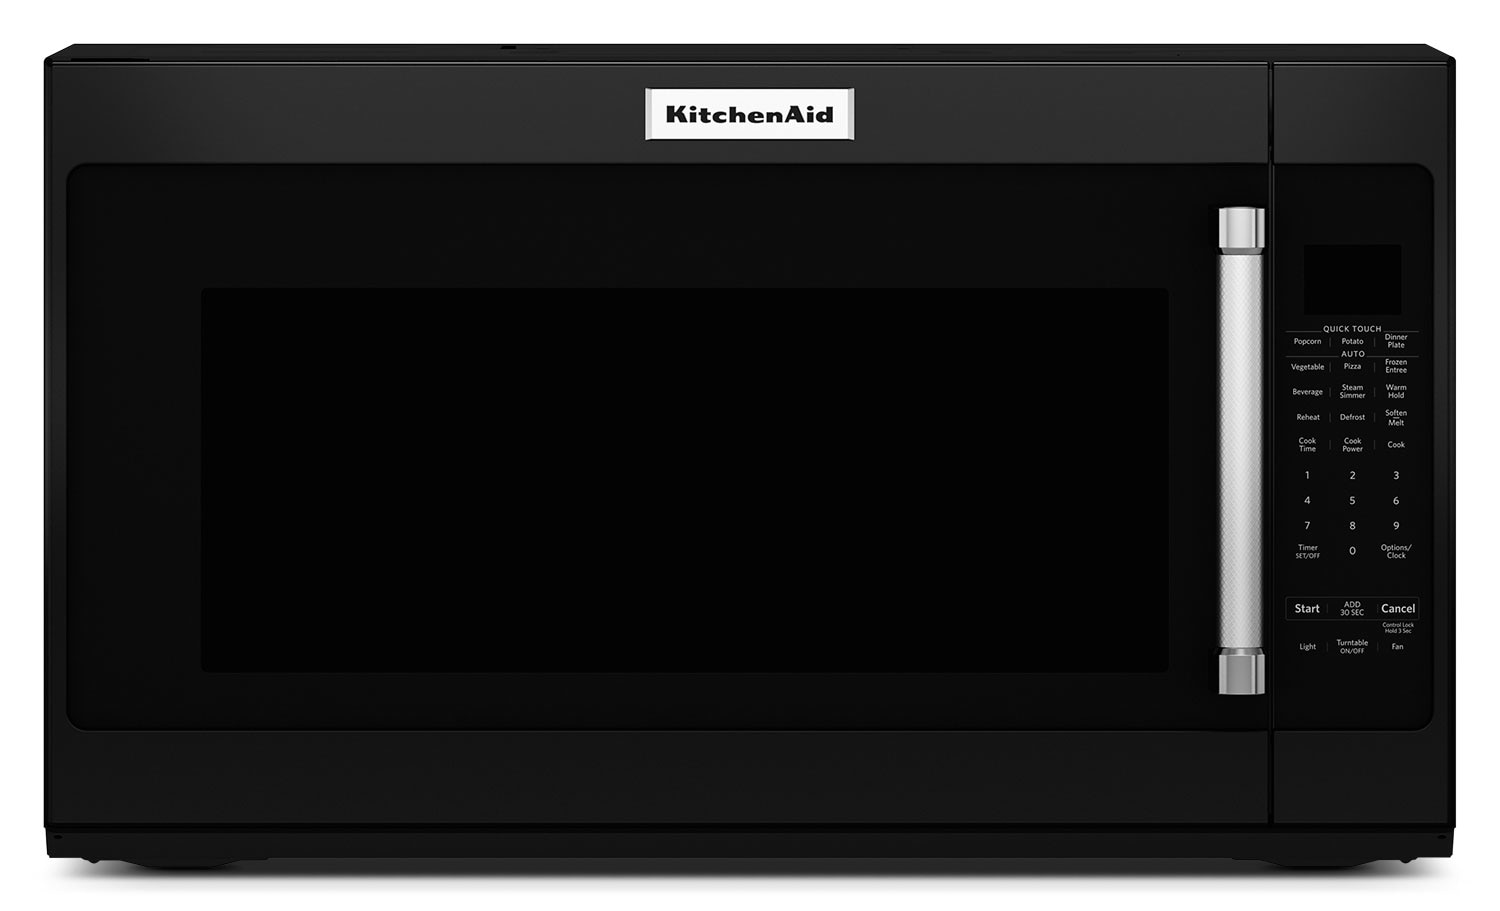 Cooking Products - KitchenAid 2.0 Cu. Ft. Over-the-Range Microwave with Sensor Functions - Black